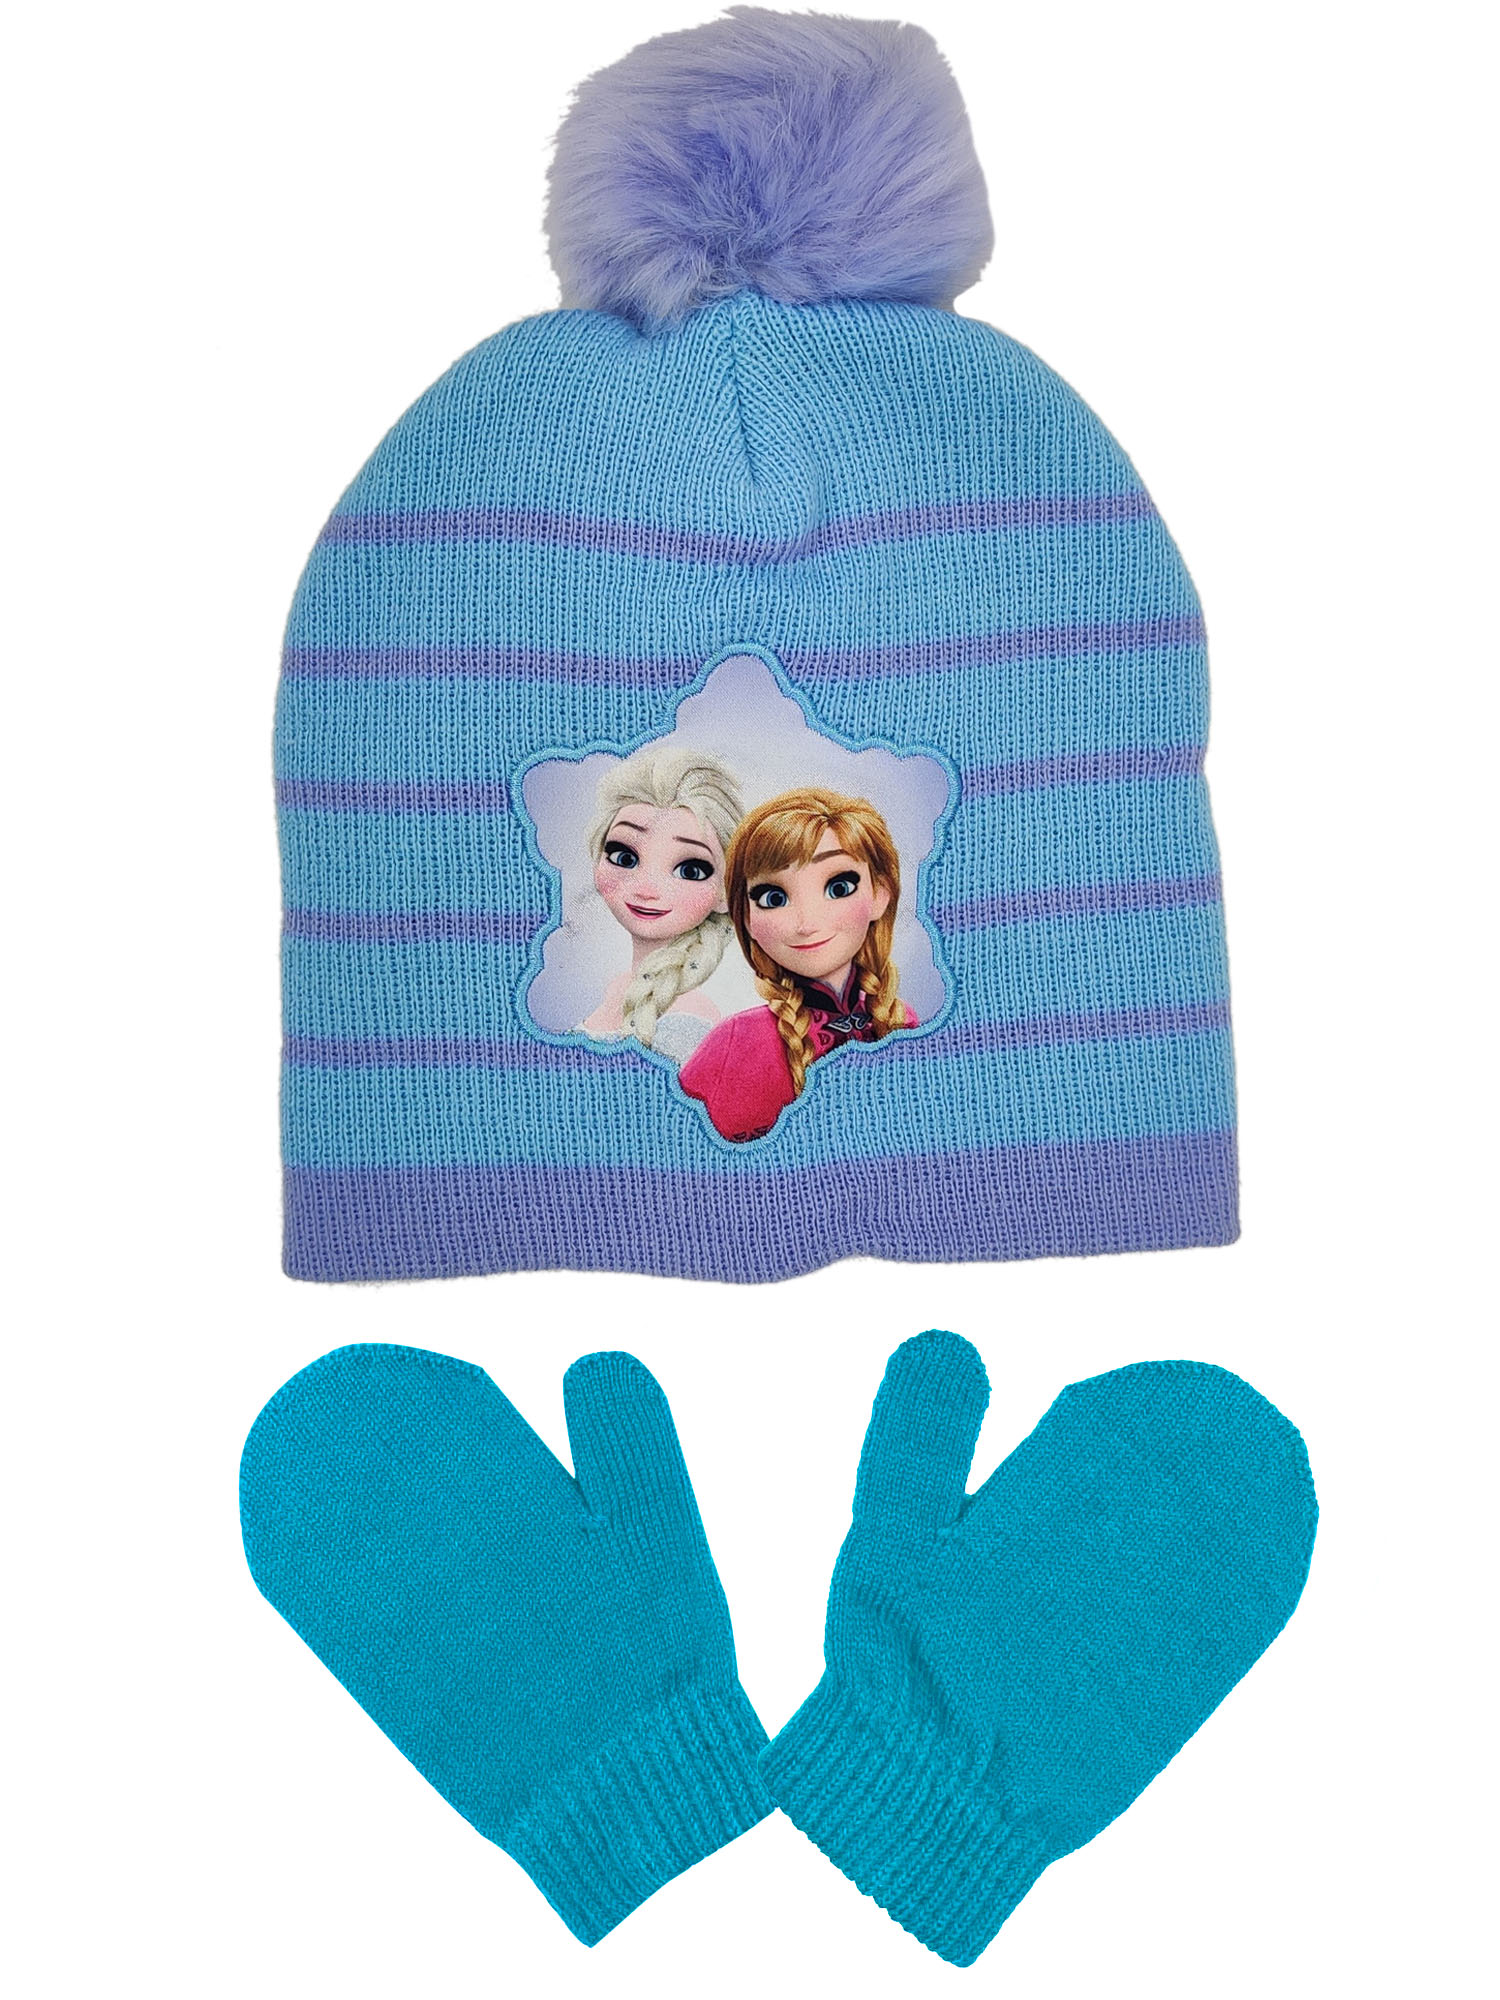 HAT /& MITTEN NEW DISNEY FROZEN ELSA GIRLS TOBBOGAN GLOVE SET